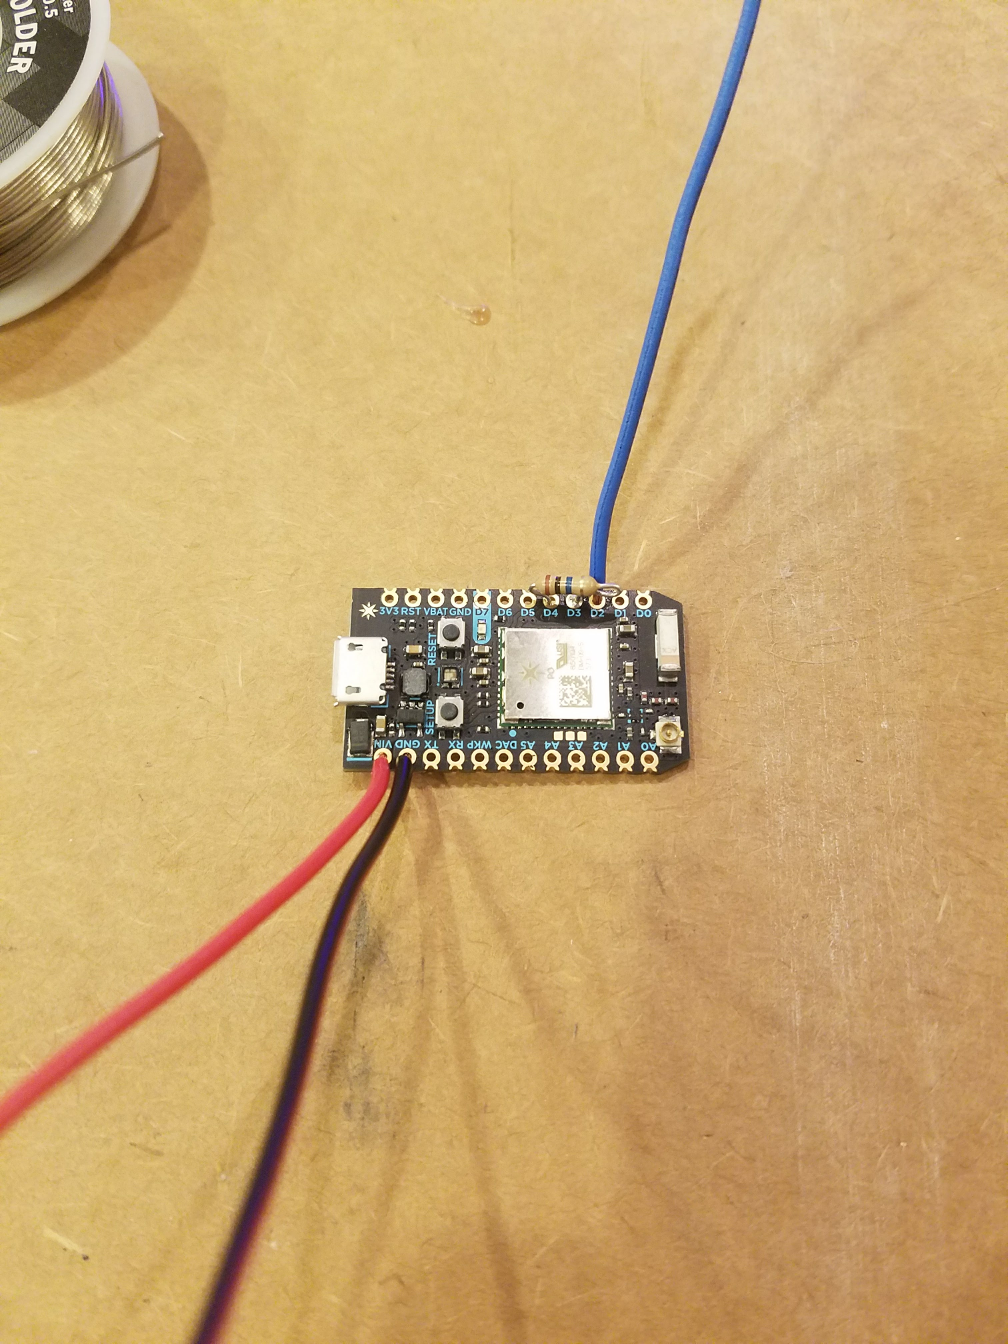 Photon with components soldered on